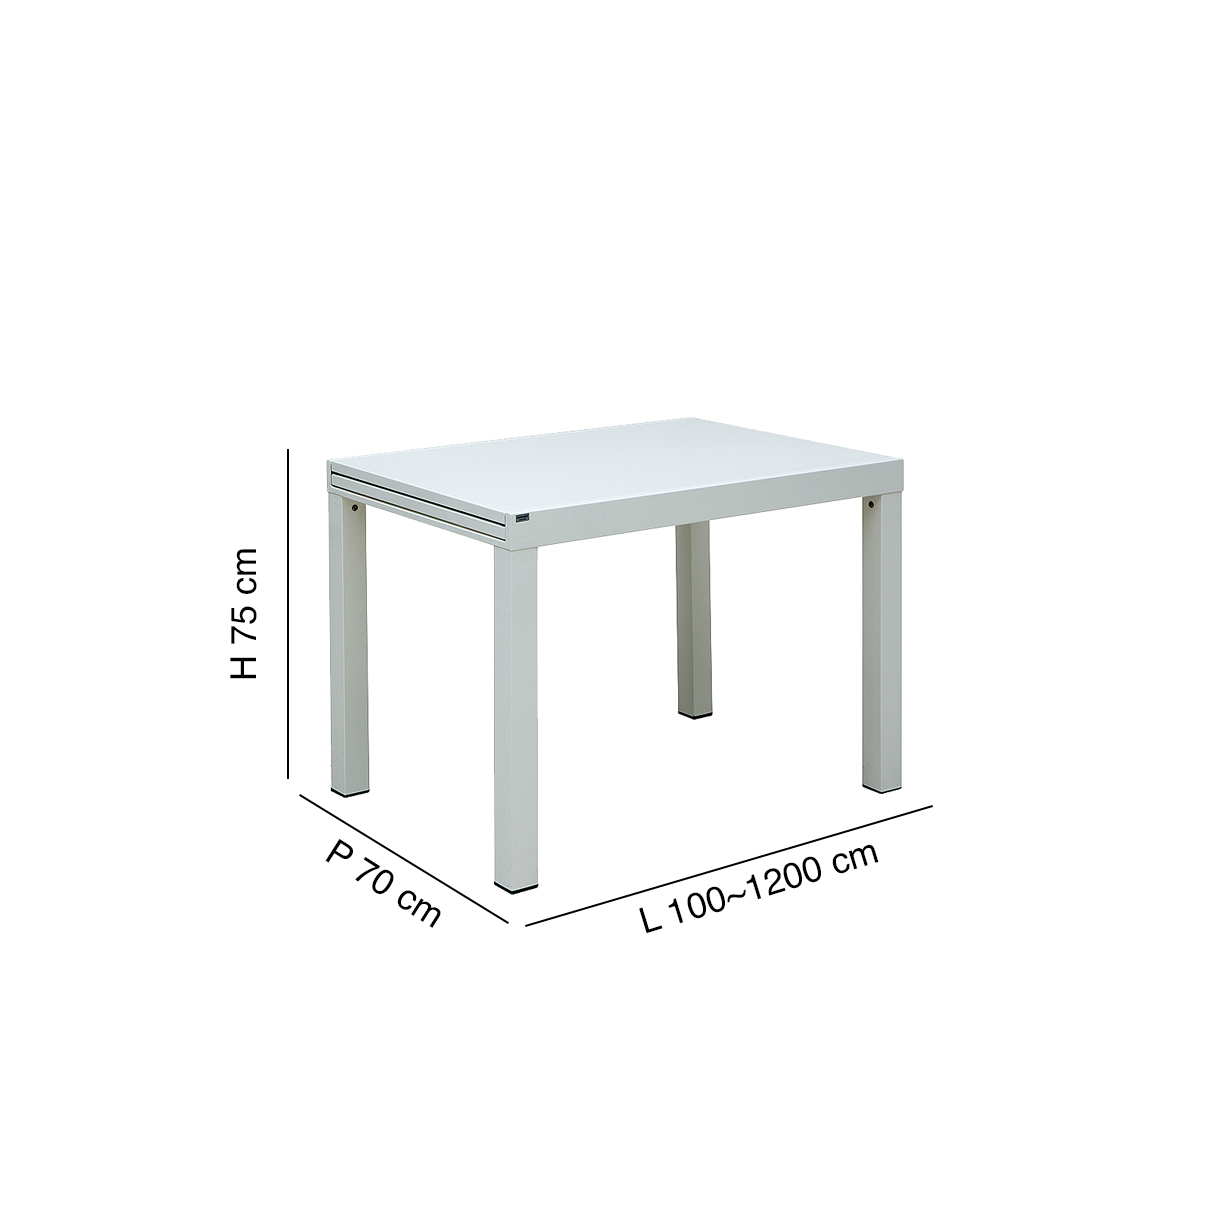 Table L 100 Extensible Sofy 200 Cm mn0Nwv8O